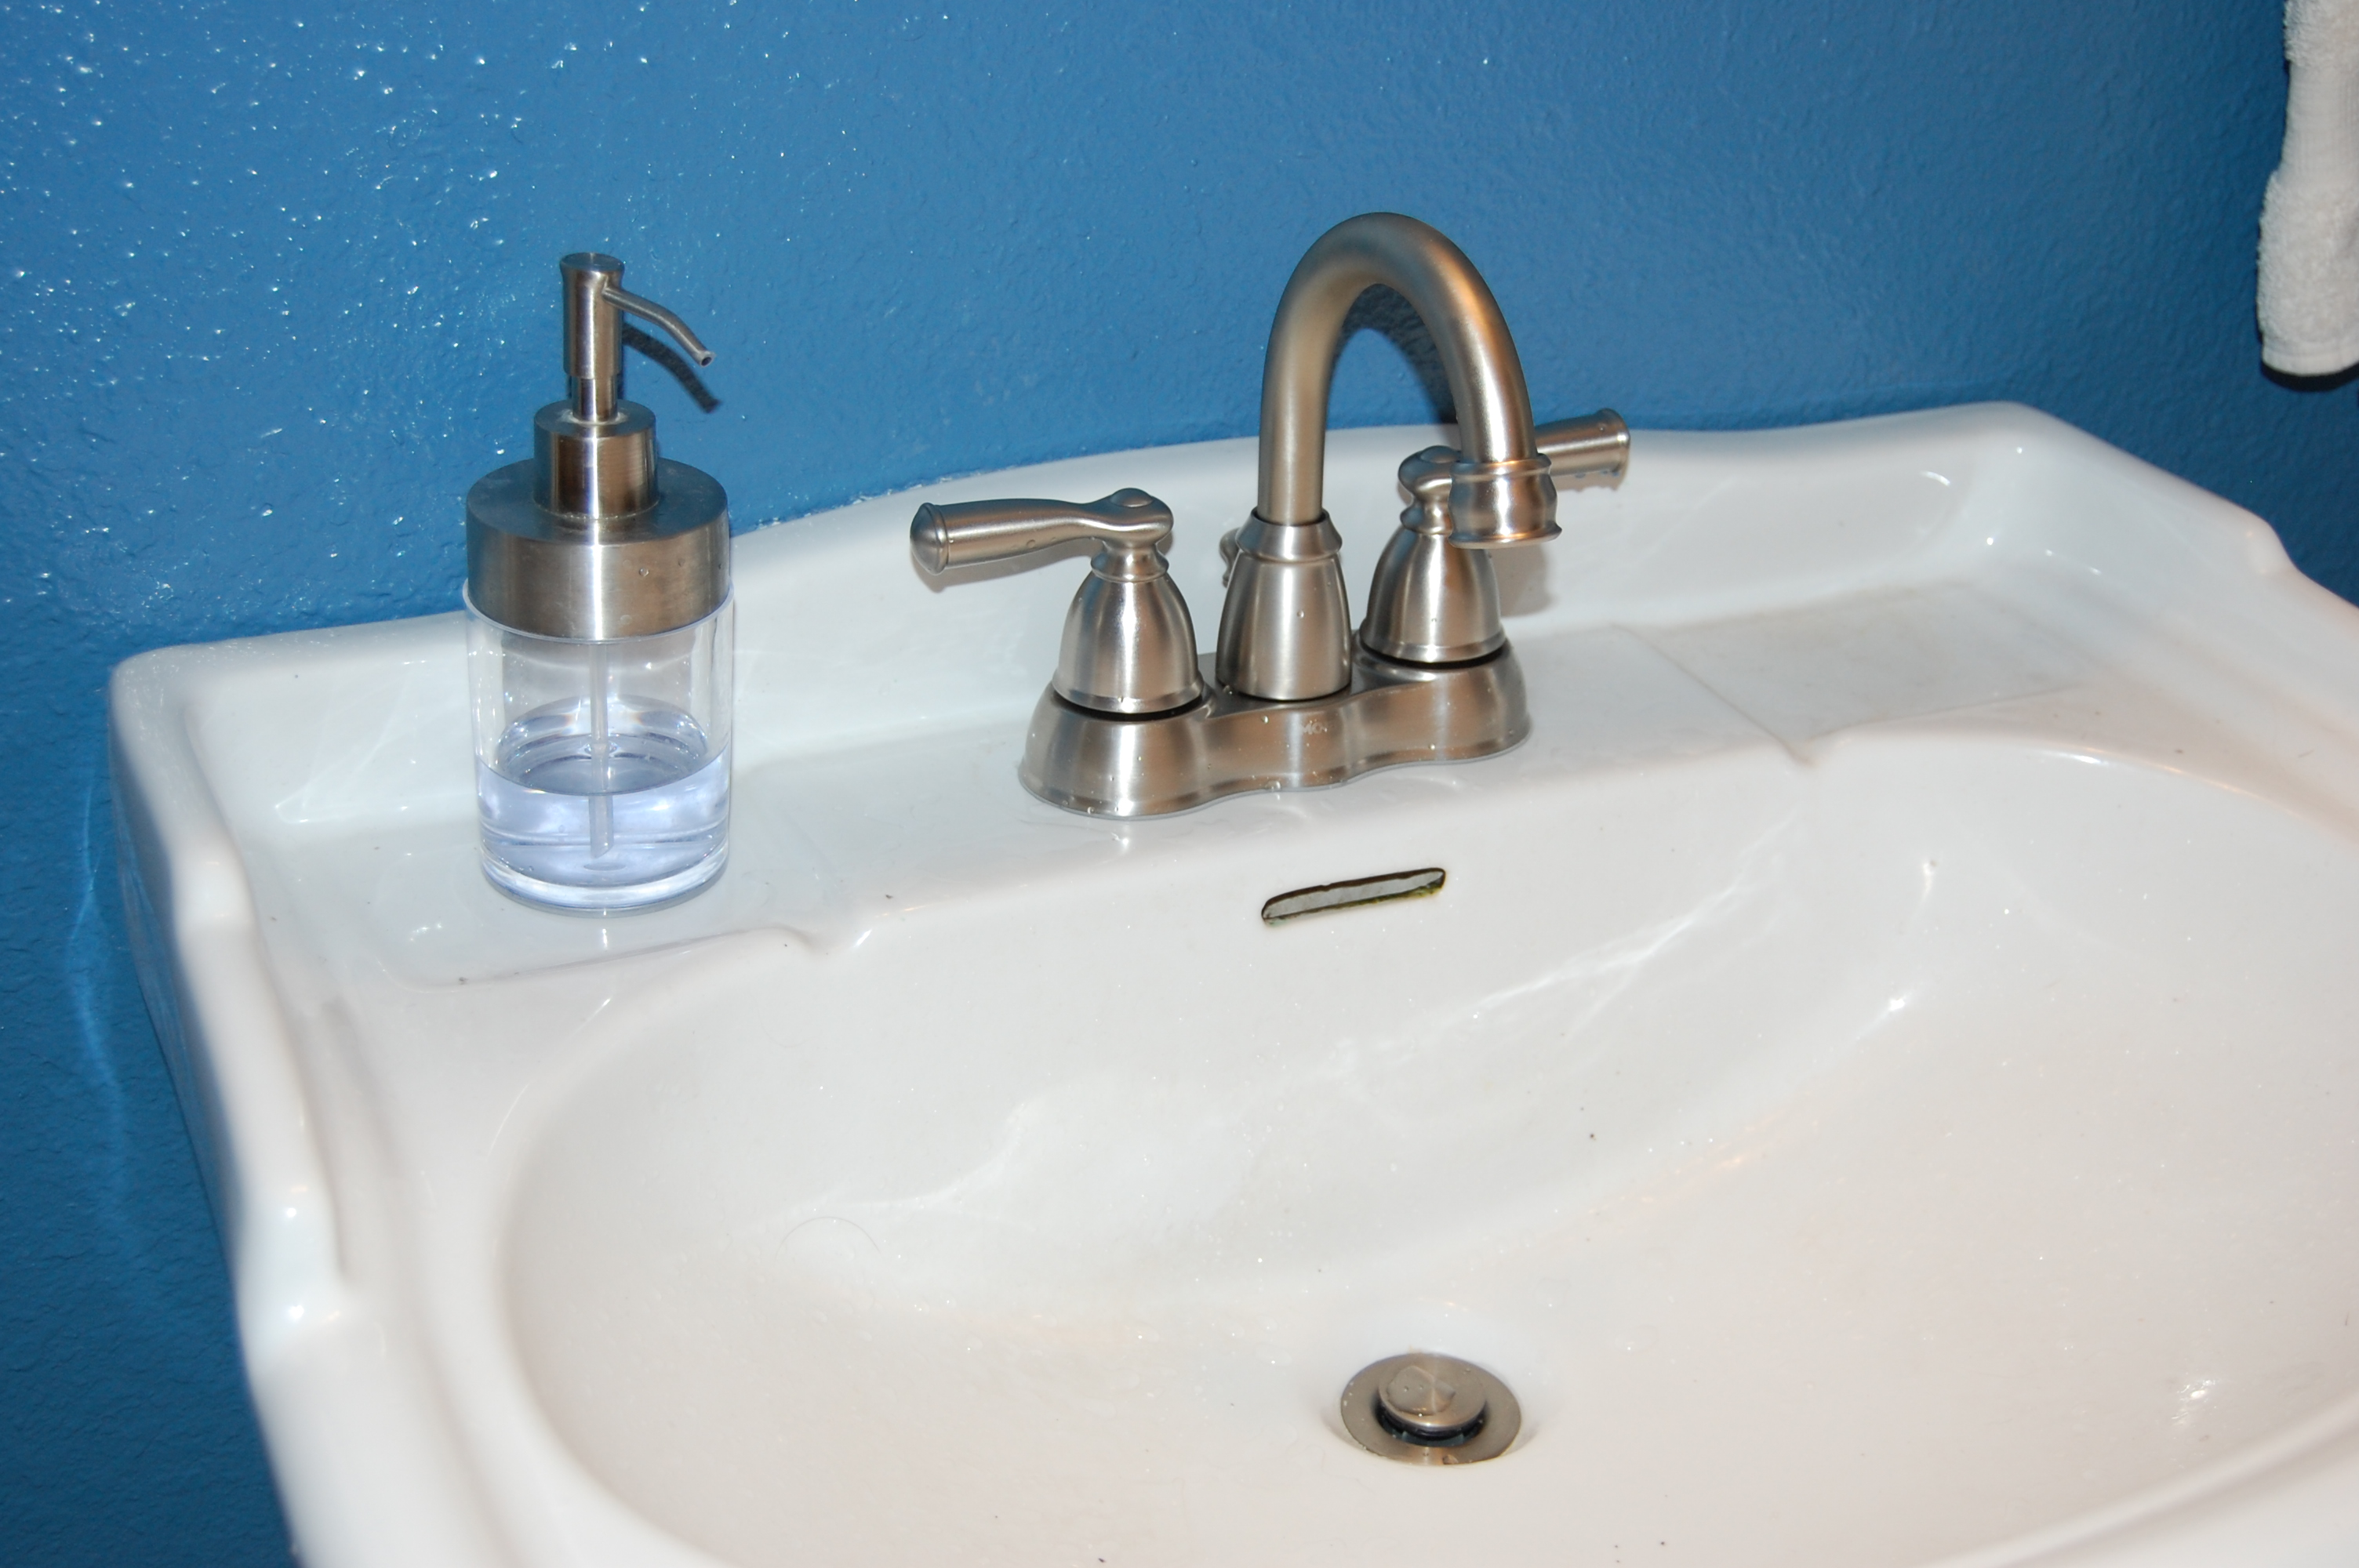 How To Remove & Install A Bathroom Faucet (pedestal Sink